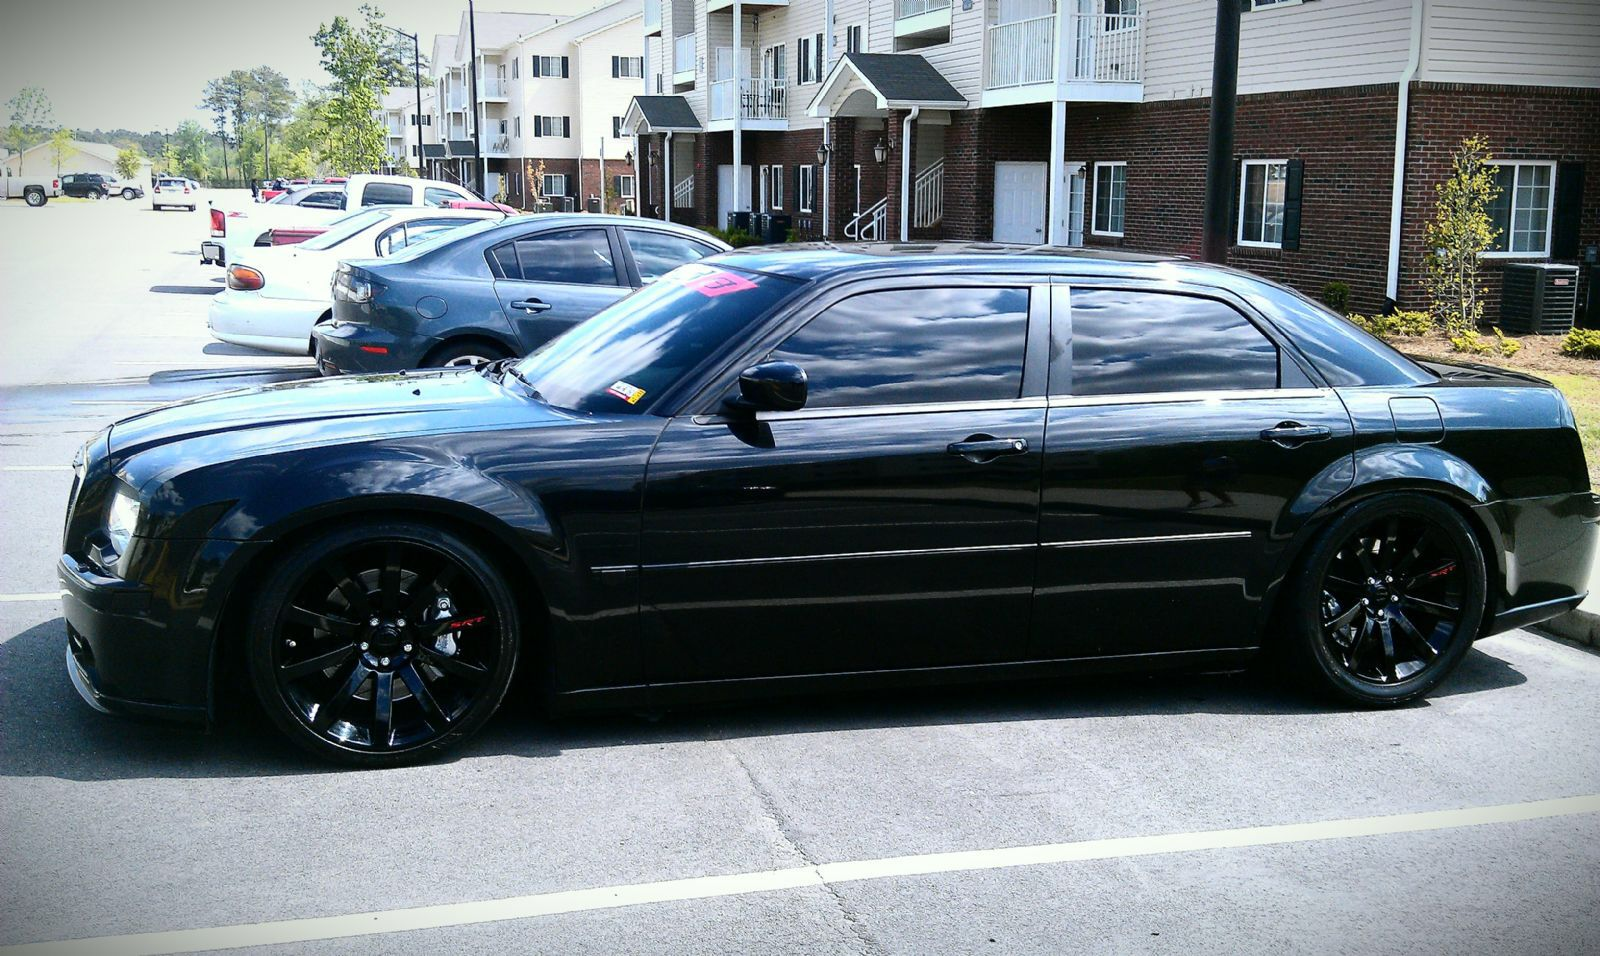 Pin By Pray On 300 C Chrysler 300 Srt8